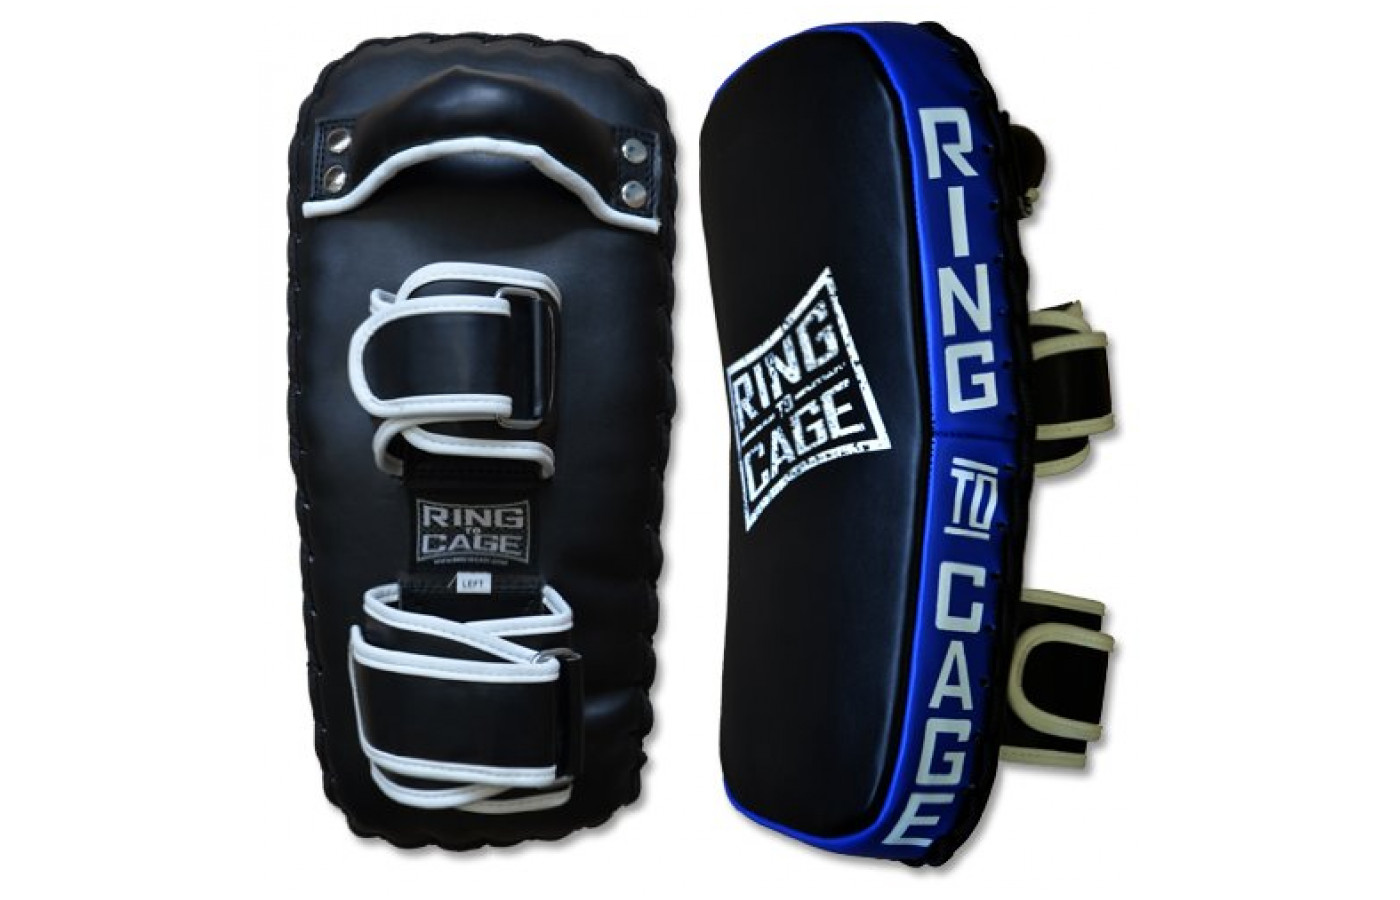 ring to cage pro curved back and angle front